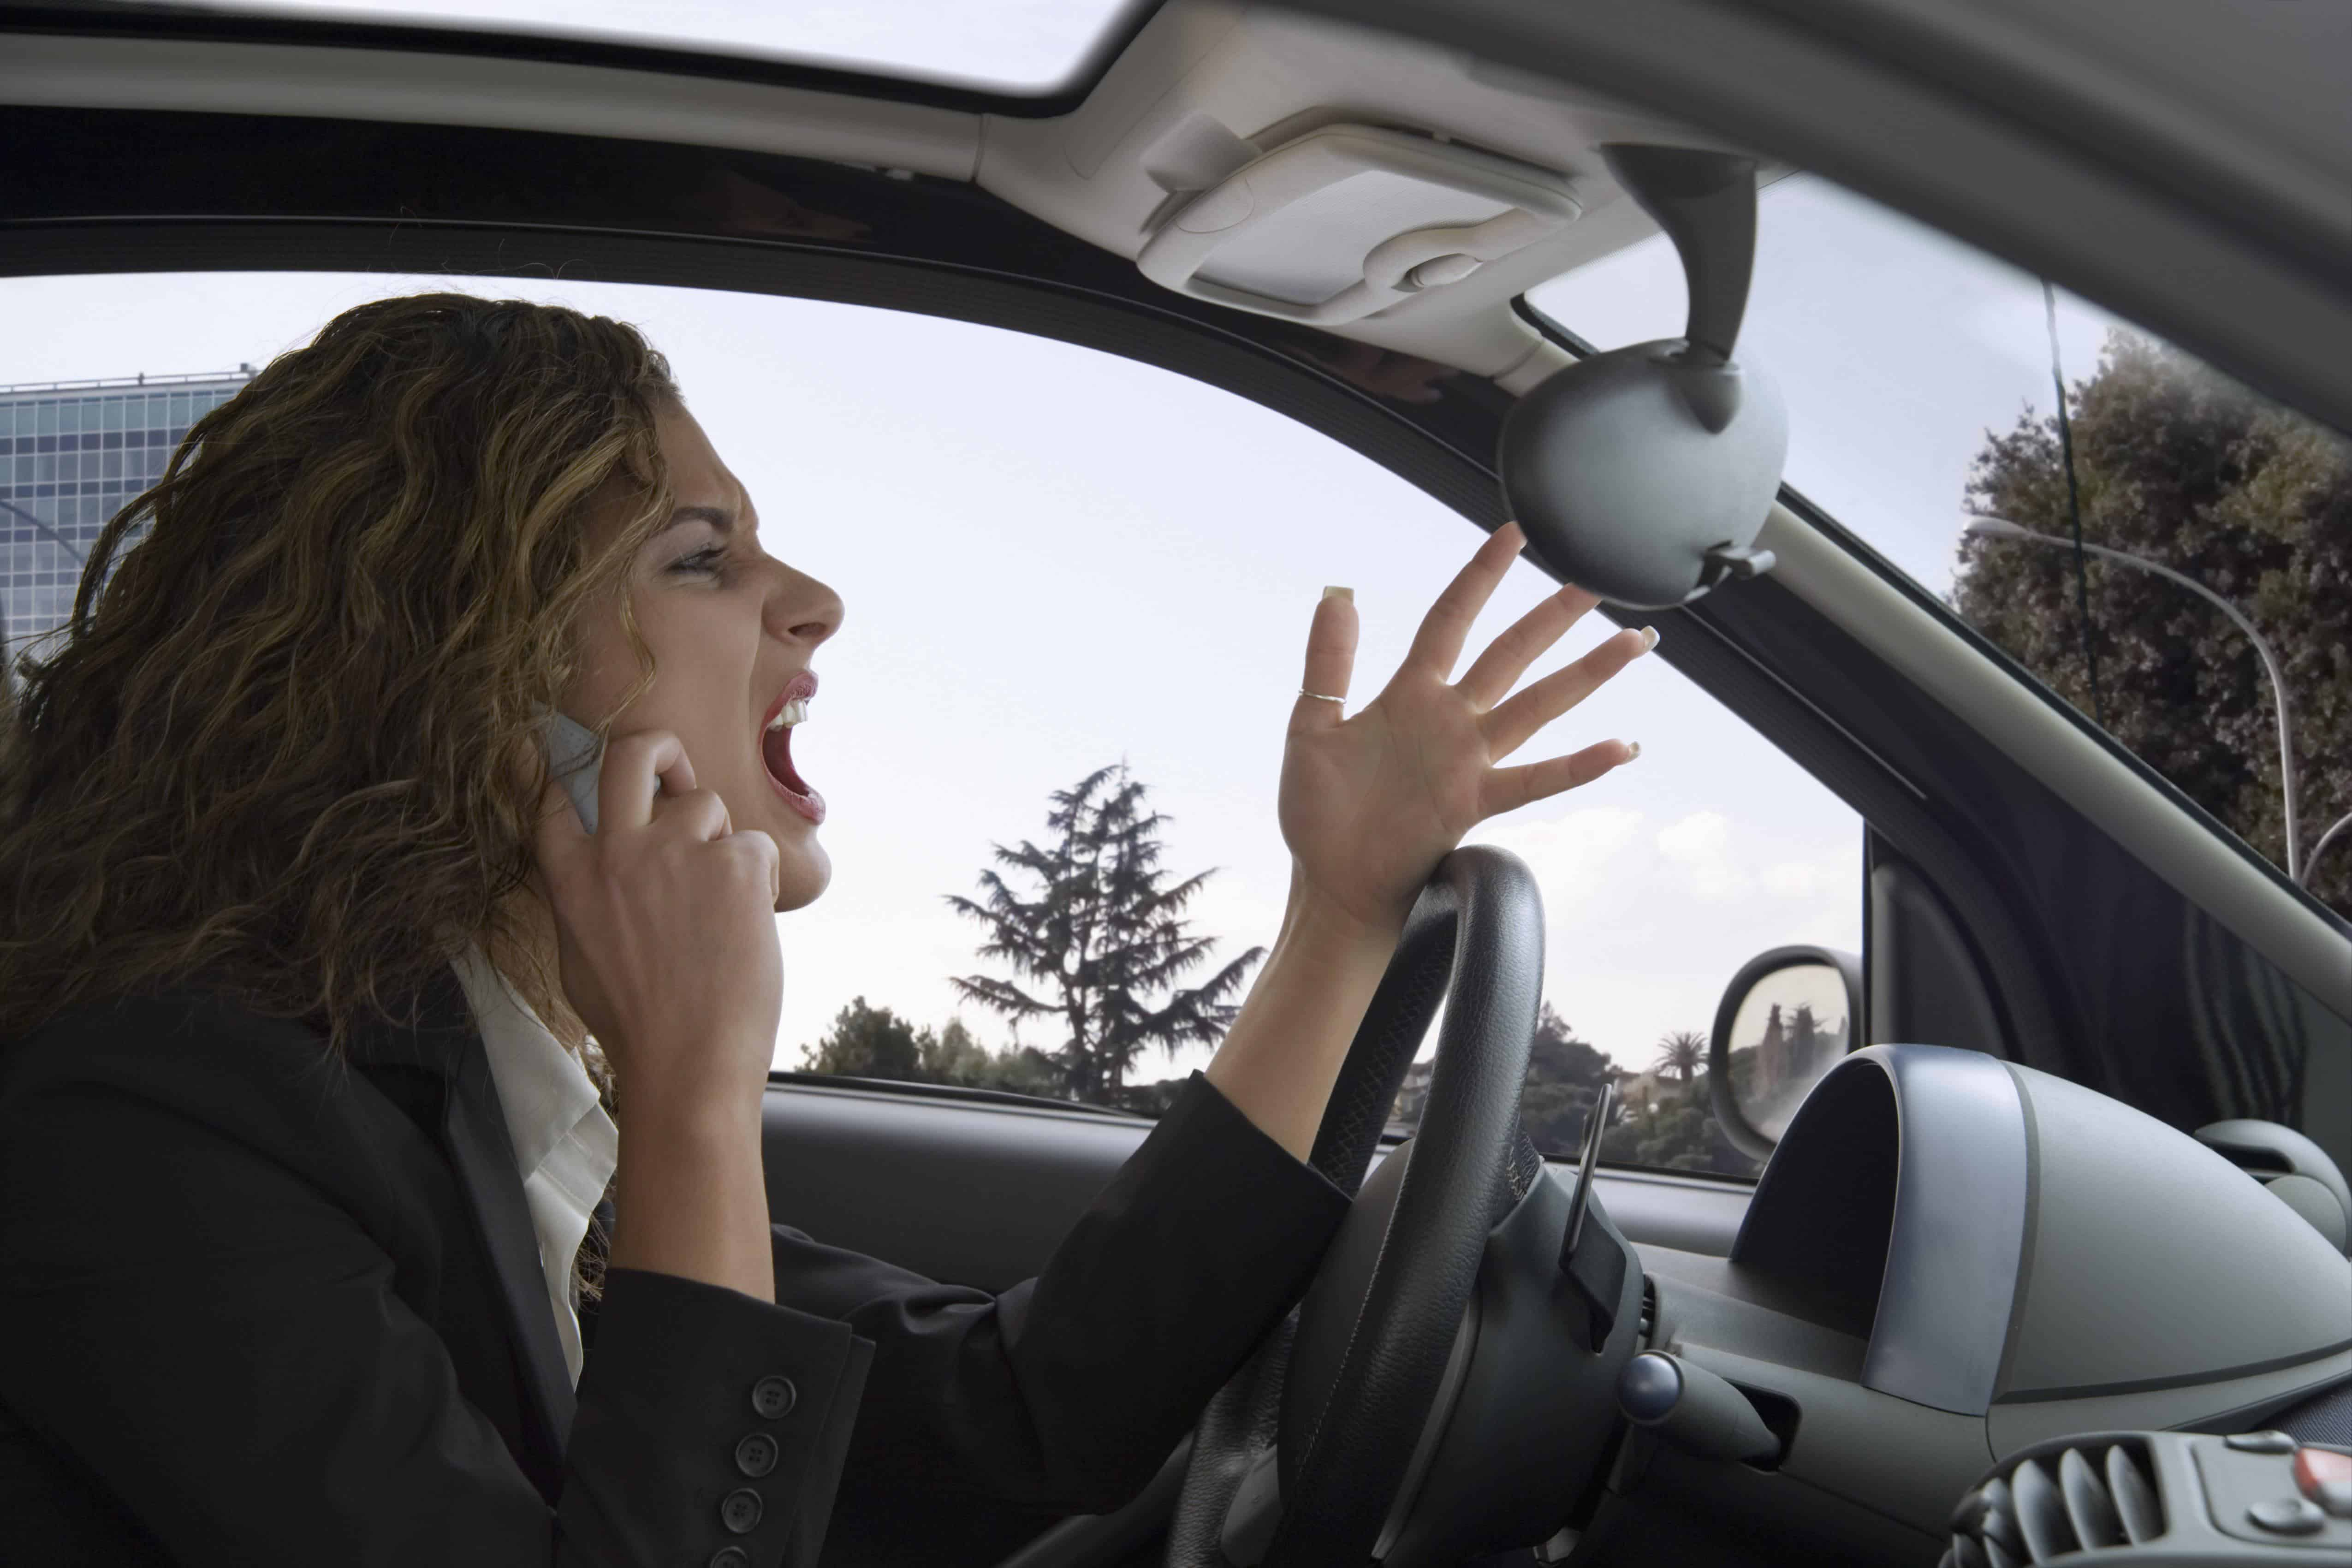 600-02264773 © Siephoto Model Release: Yes Property Release: No Woman Yelling while Driving Car and Using Cell Phone